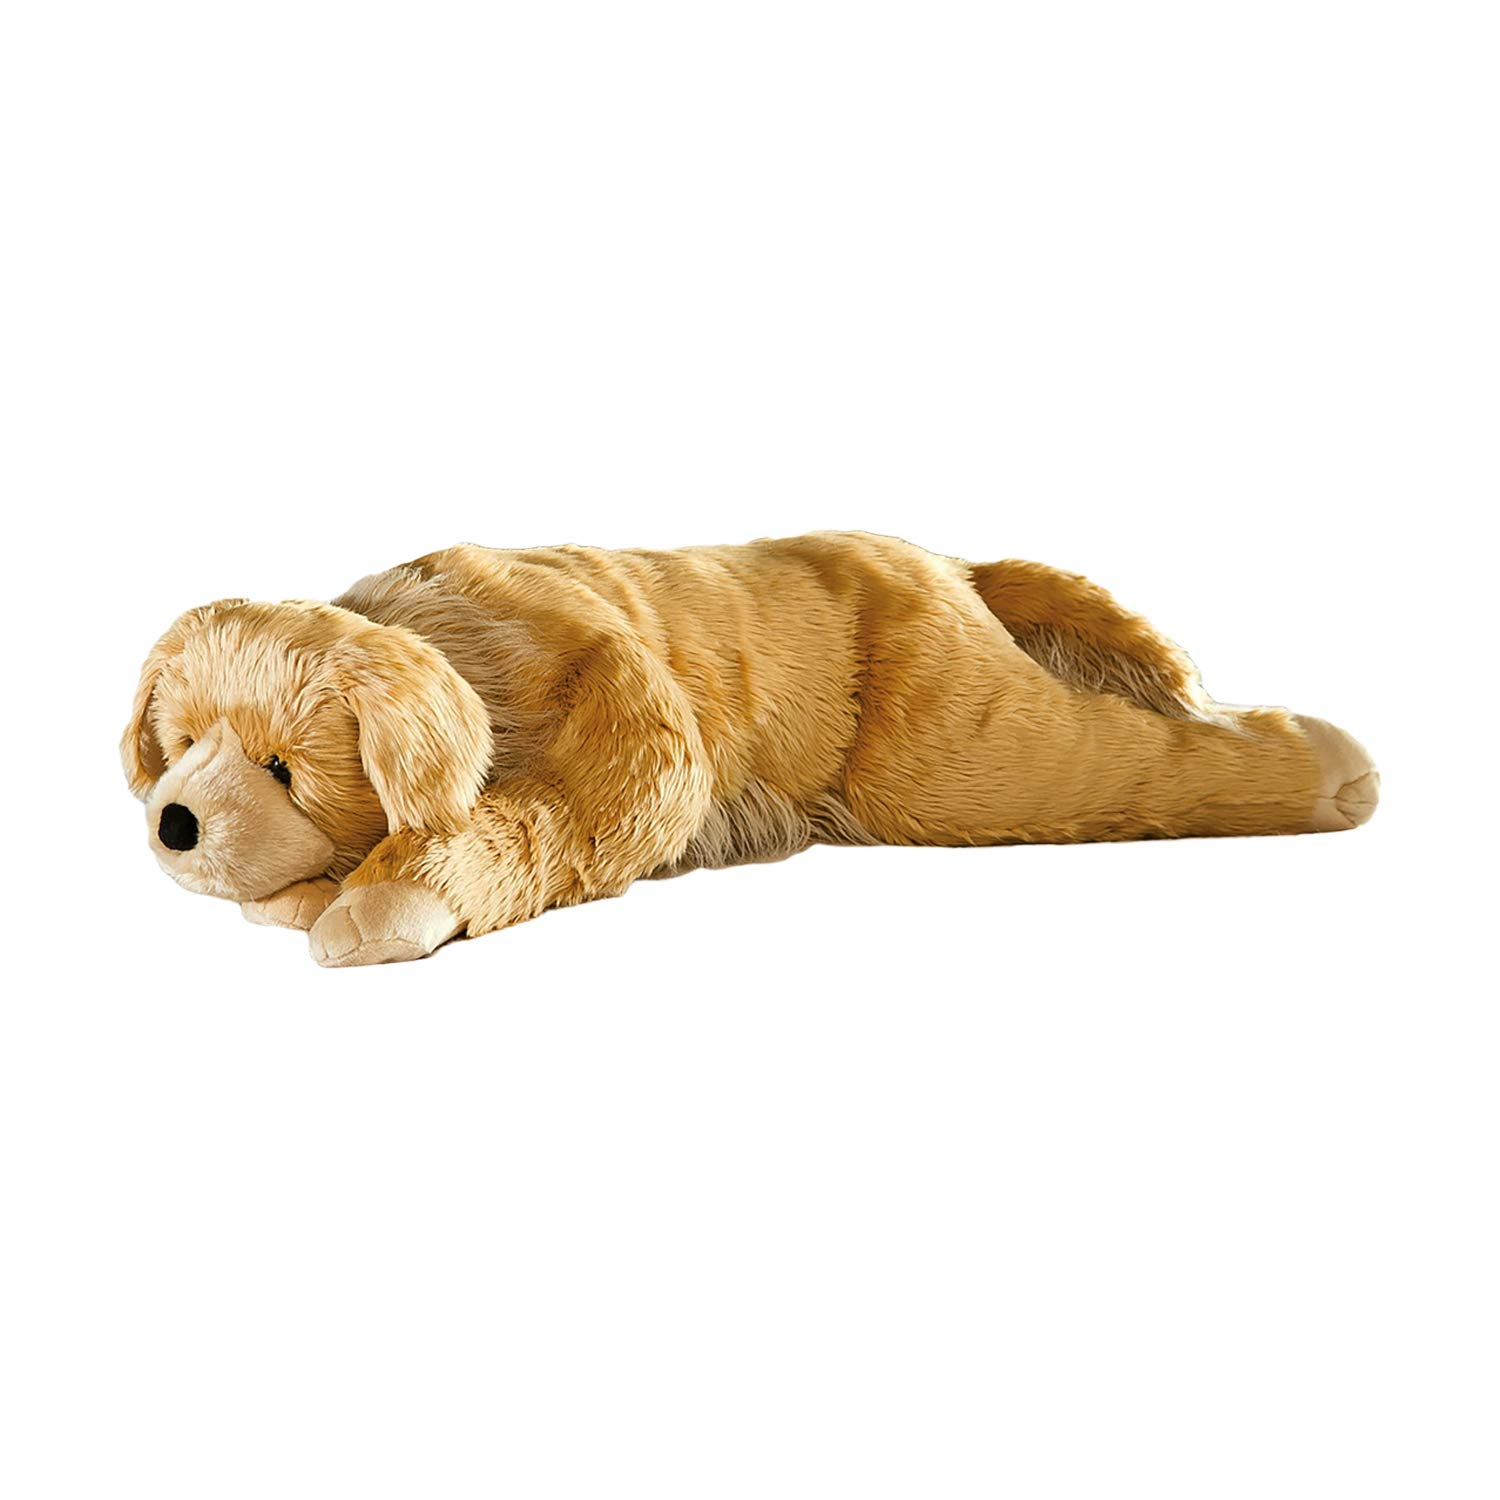 B.Boutique Golden Retriever Polyester Body Pillow by B.Boutique